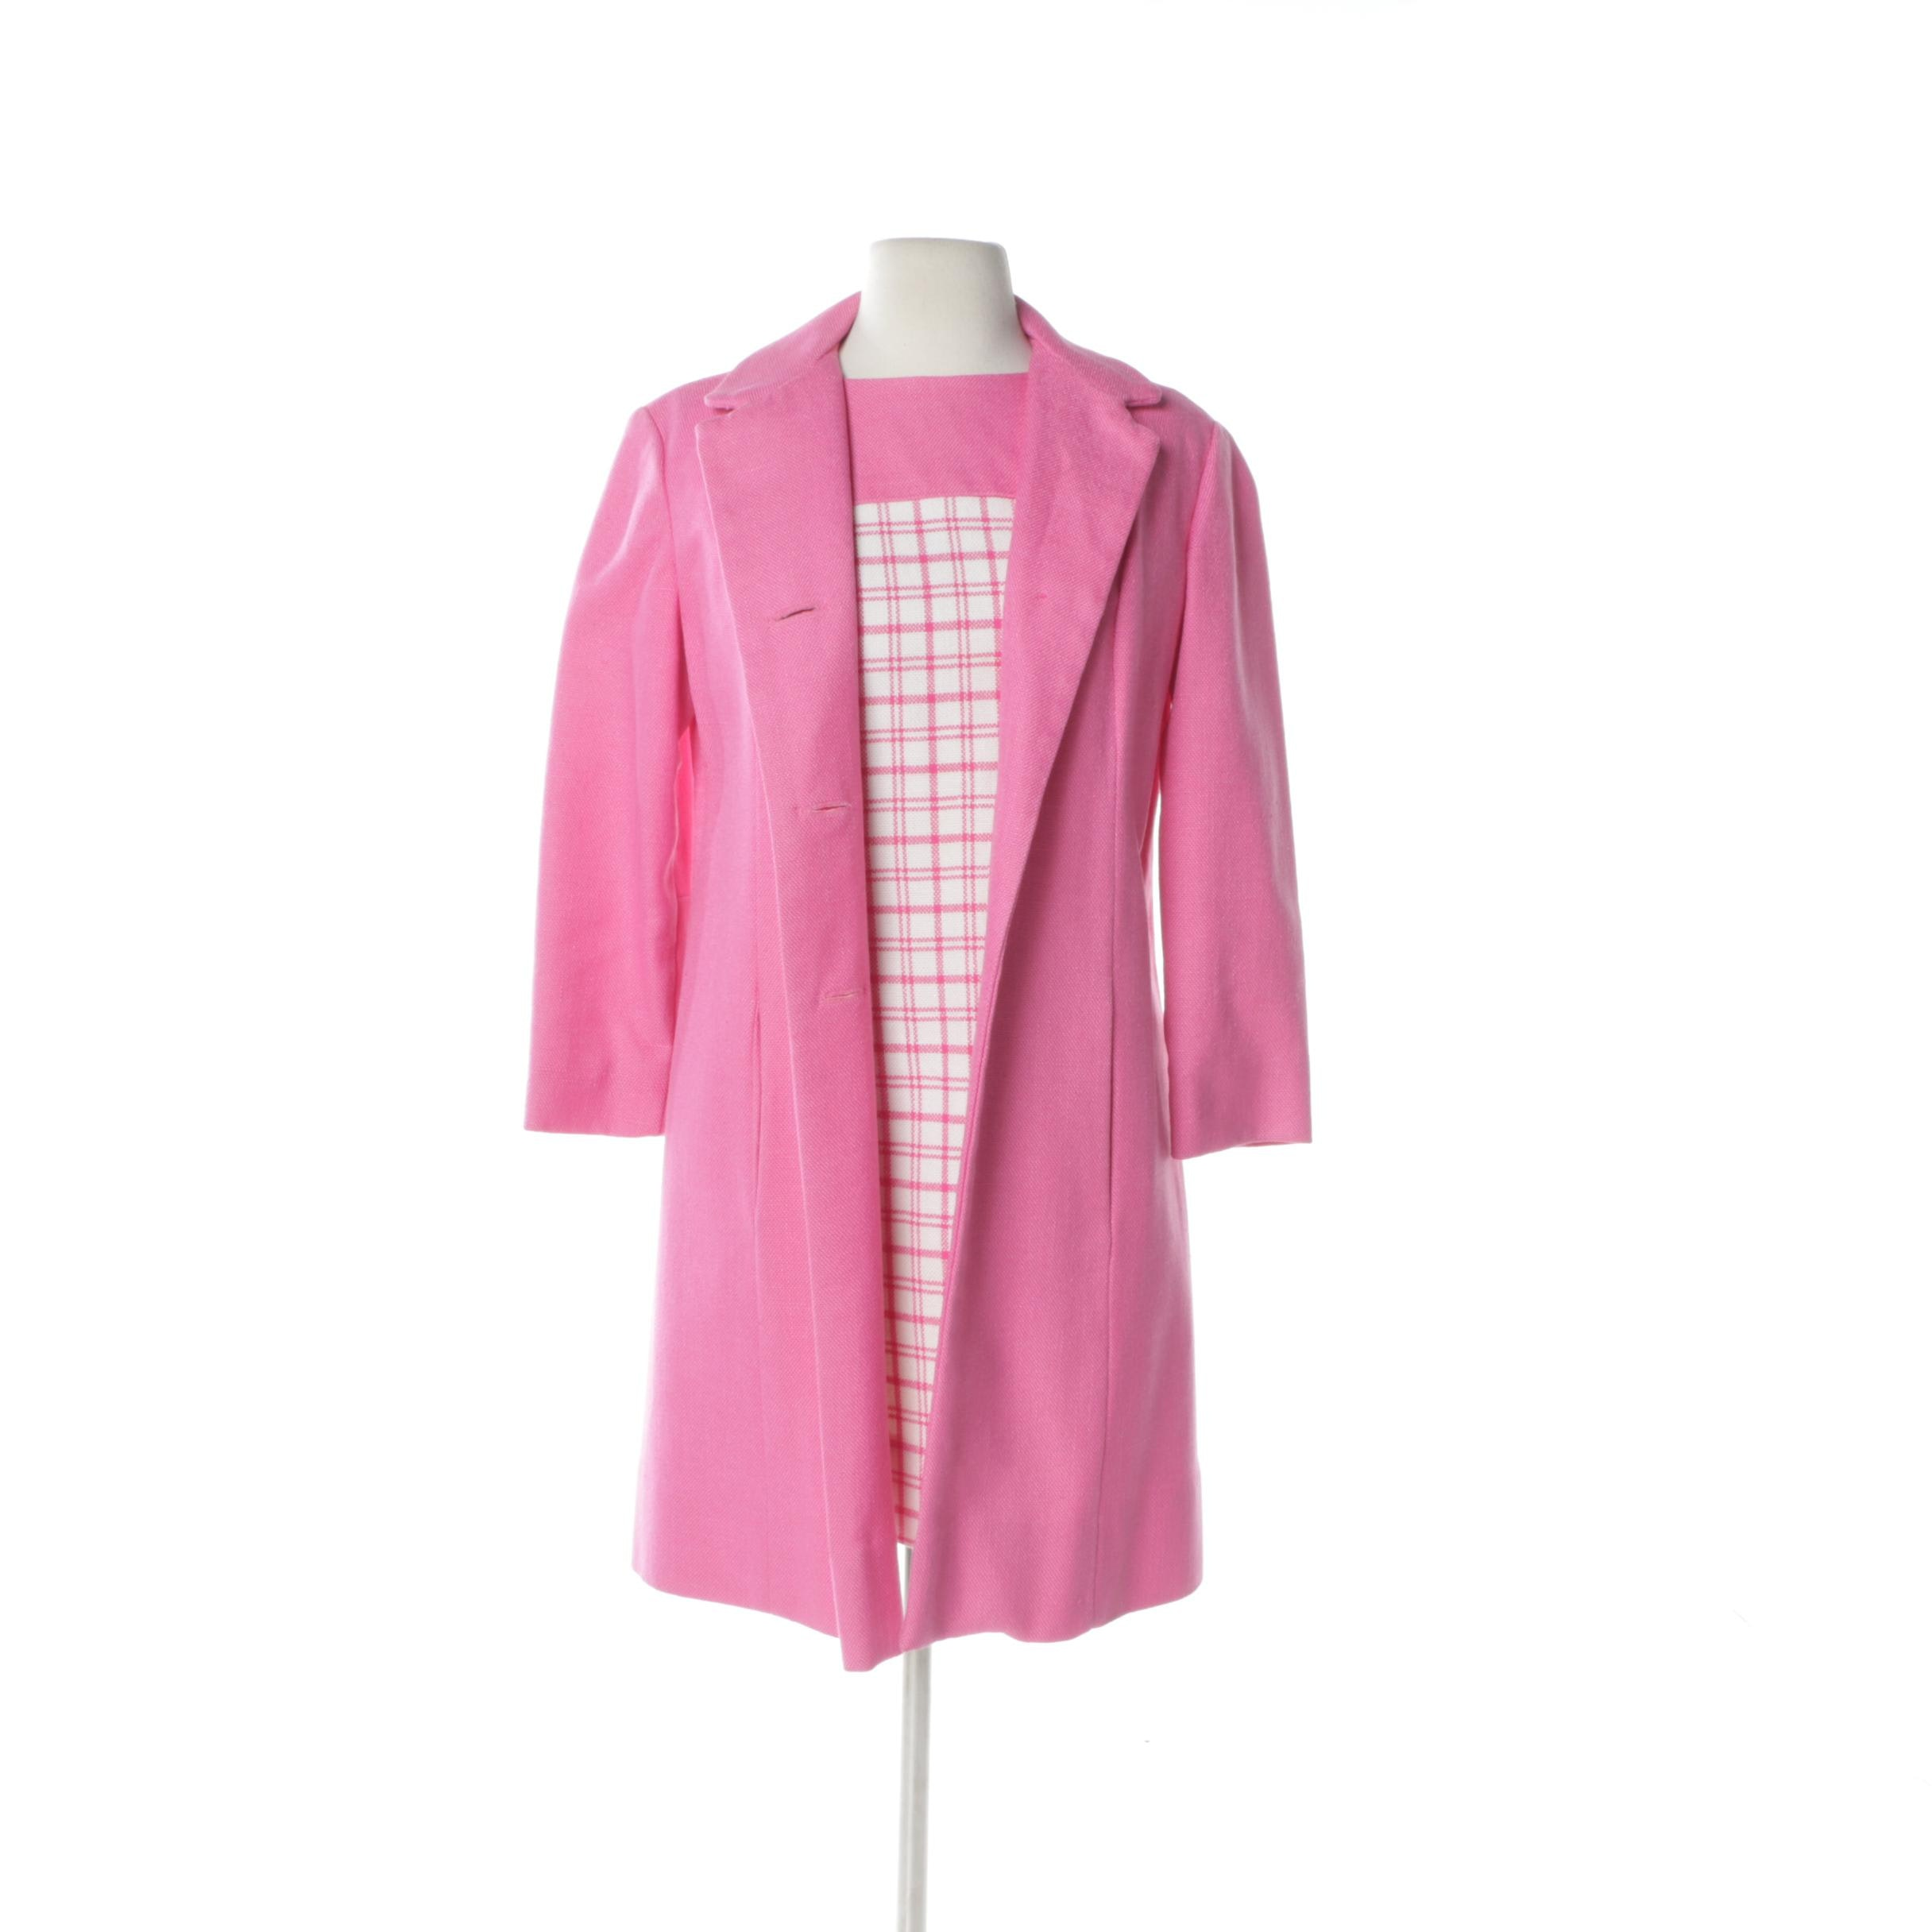 1960s Bubble Gum Pink Plaid Check Dress and Jacket